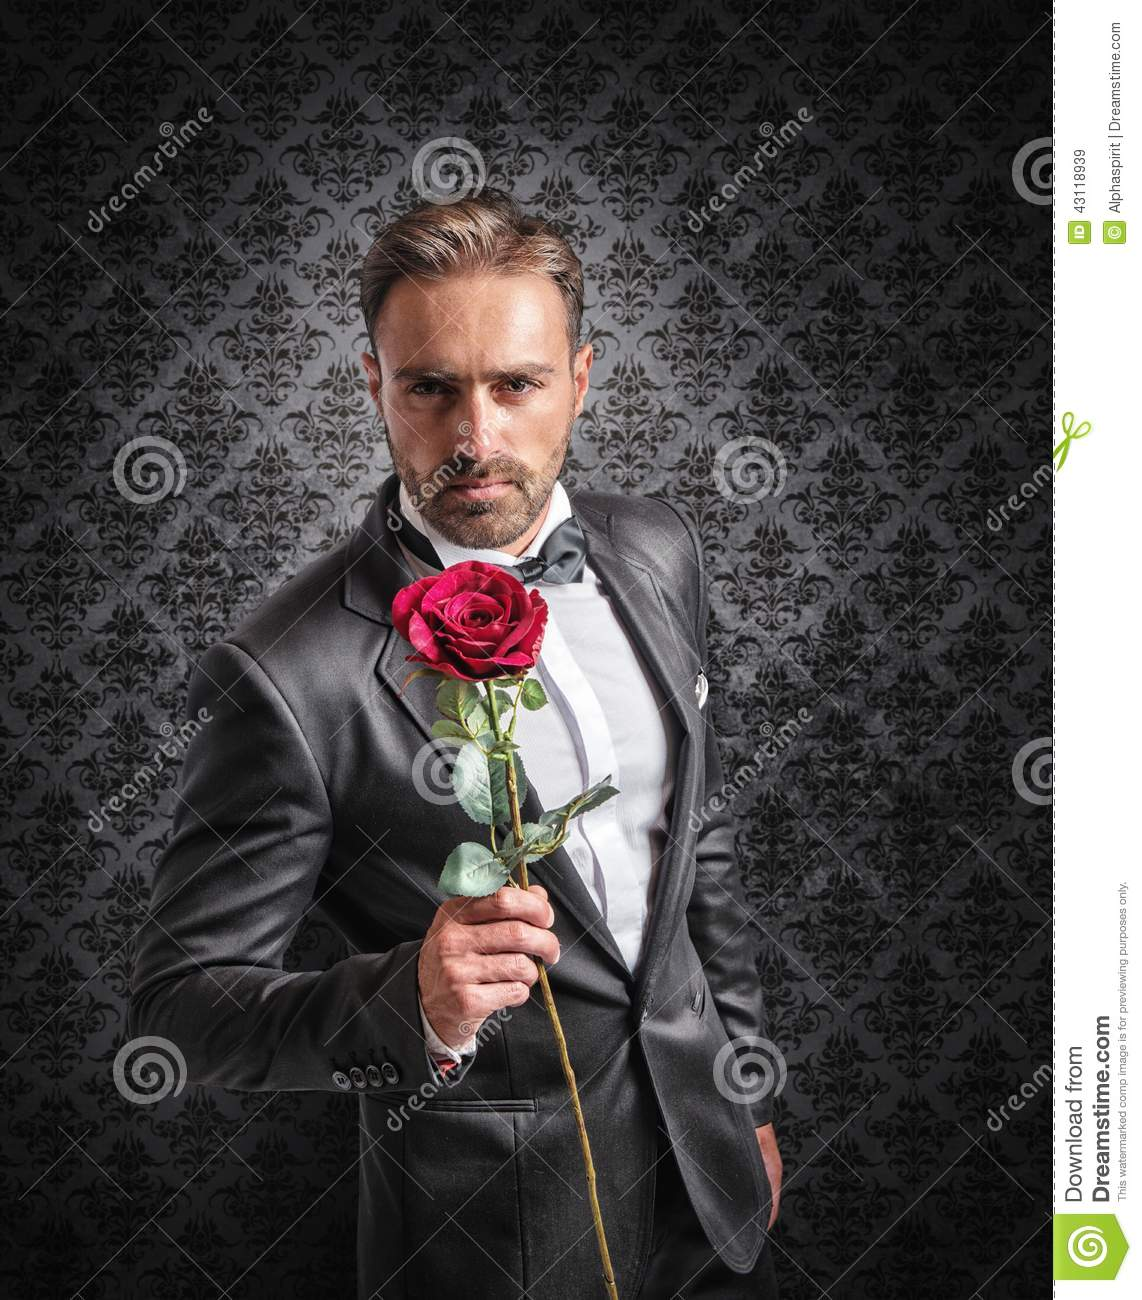 Give a rose on the anniversary